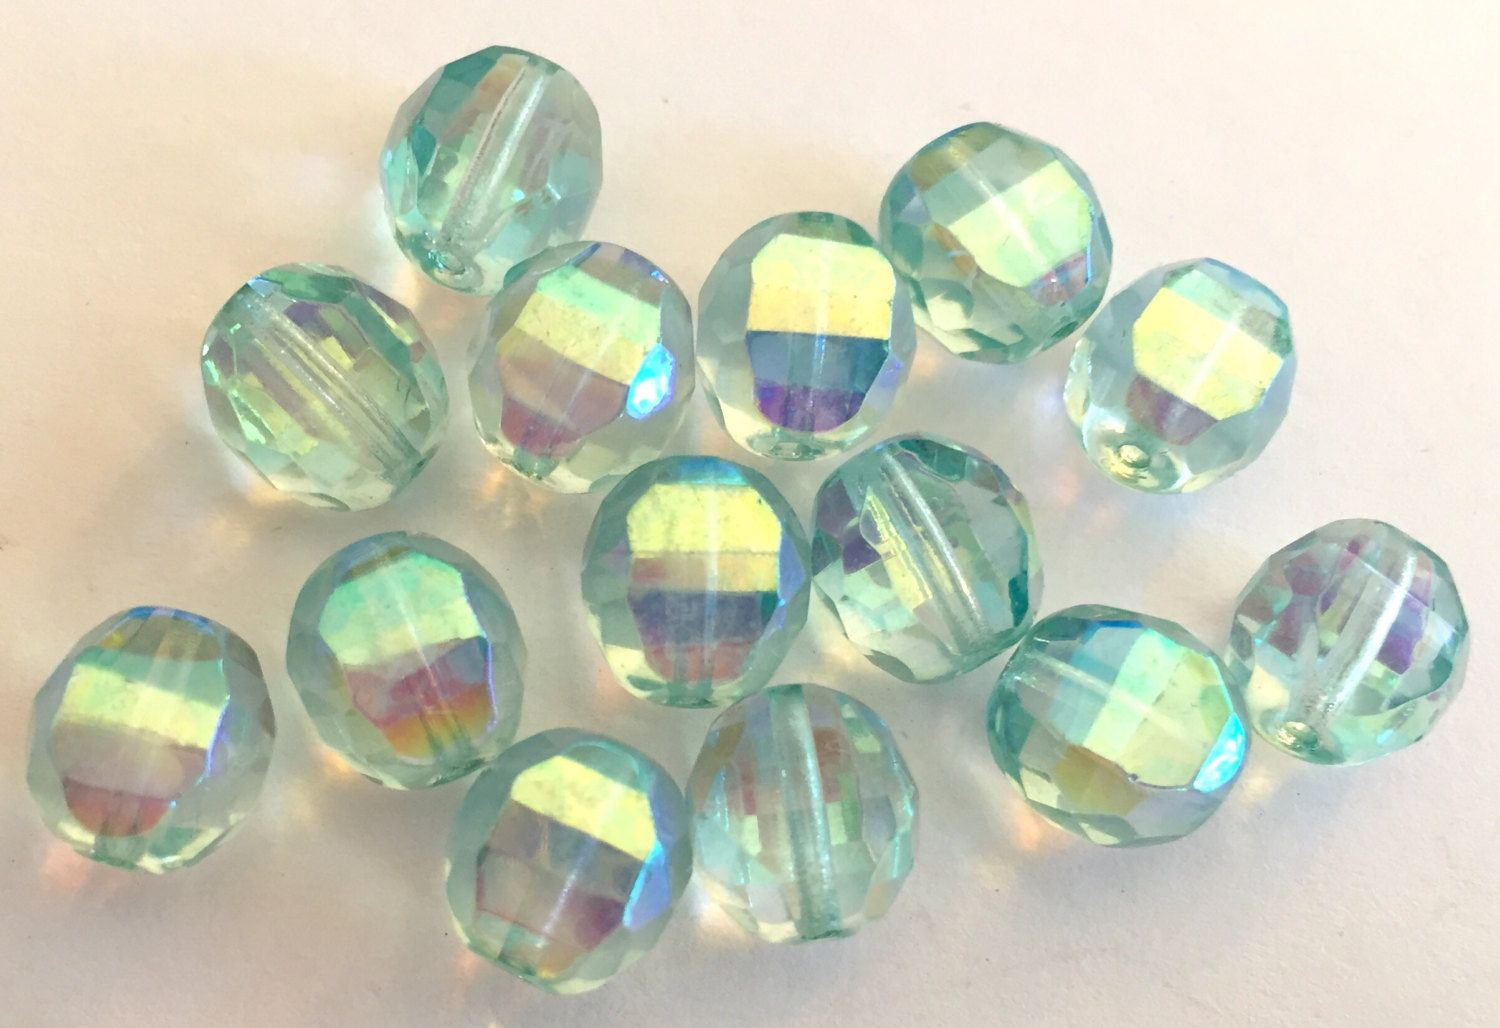 VIntage beads (8) crystal  glass  faceted Czech Aqua AB aurora borealis 10mm (8) by a2zDesigns on Etsy